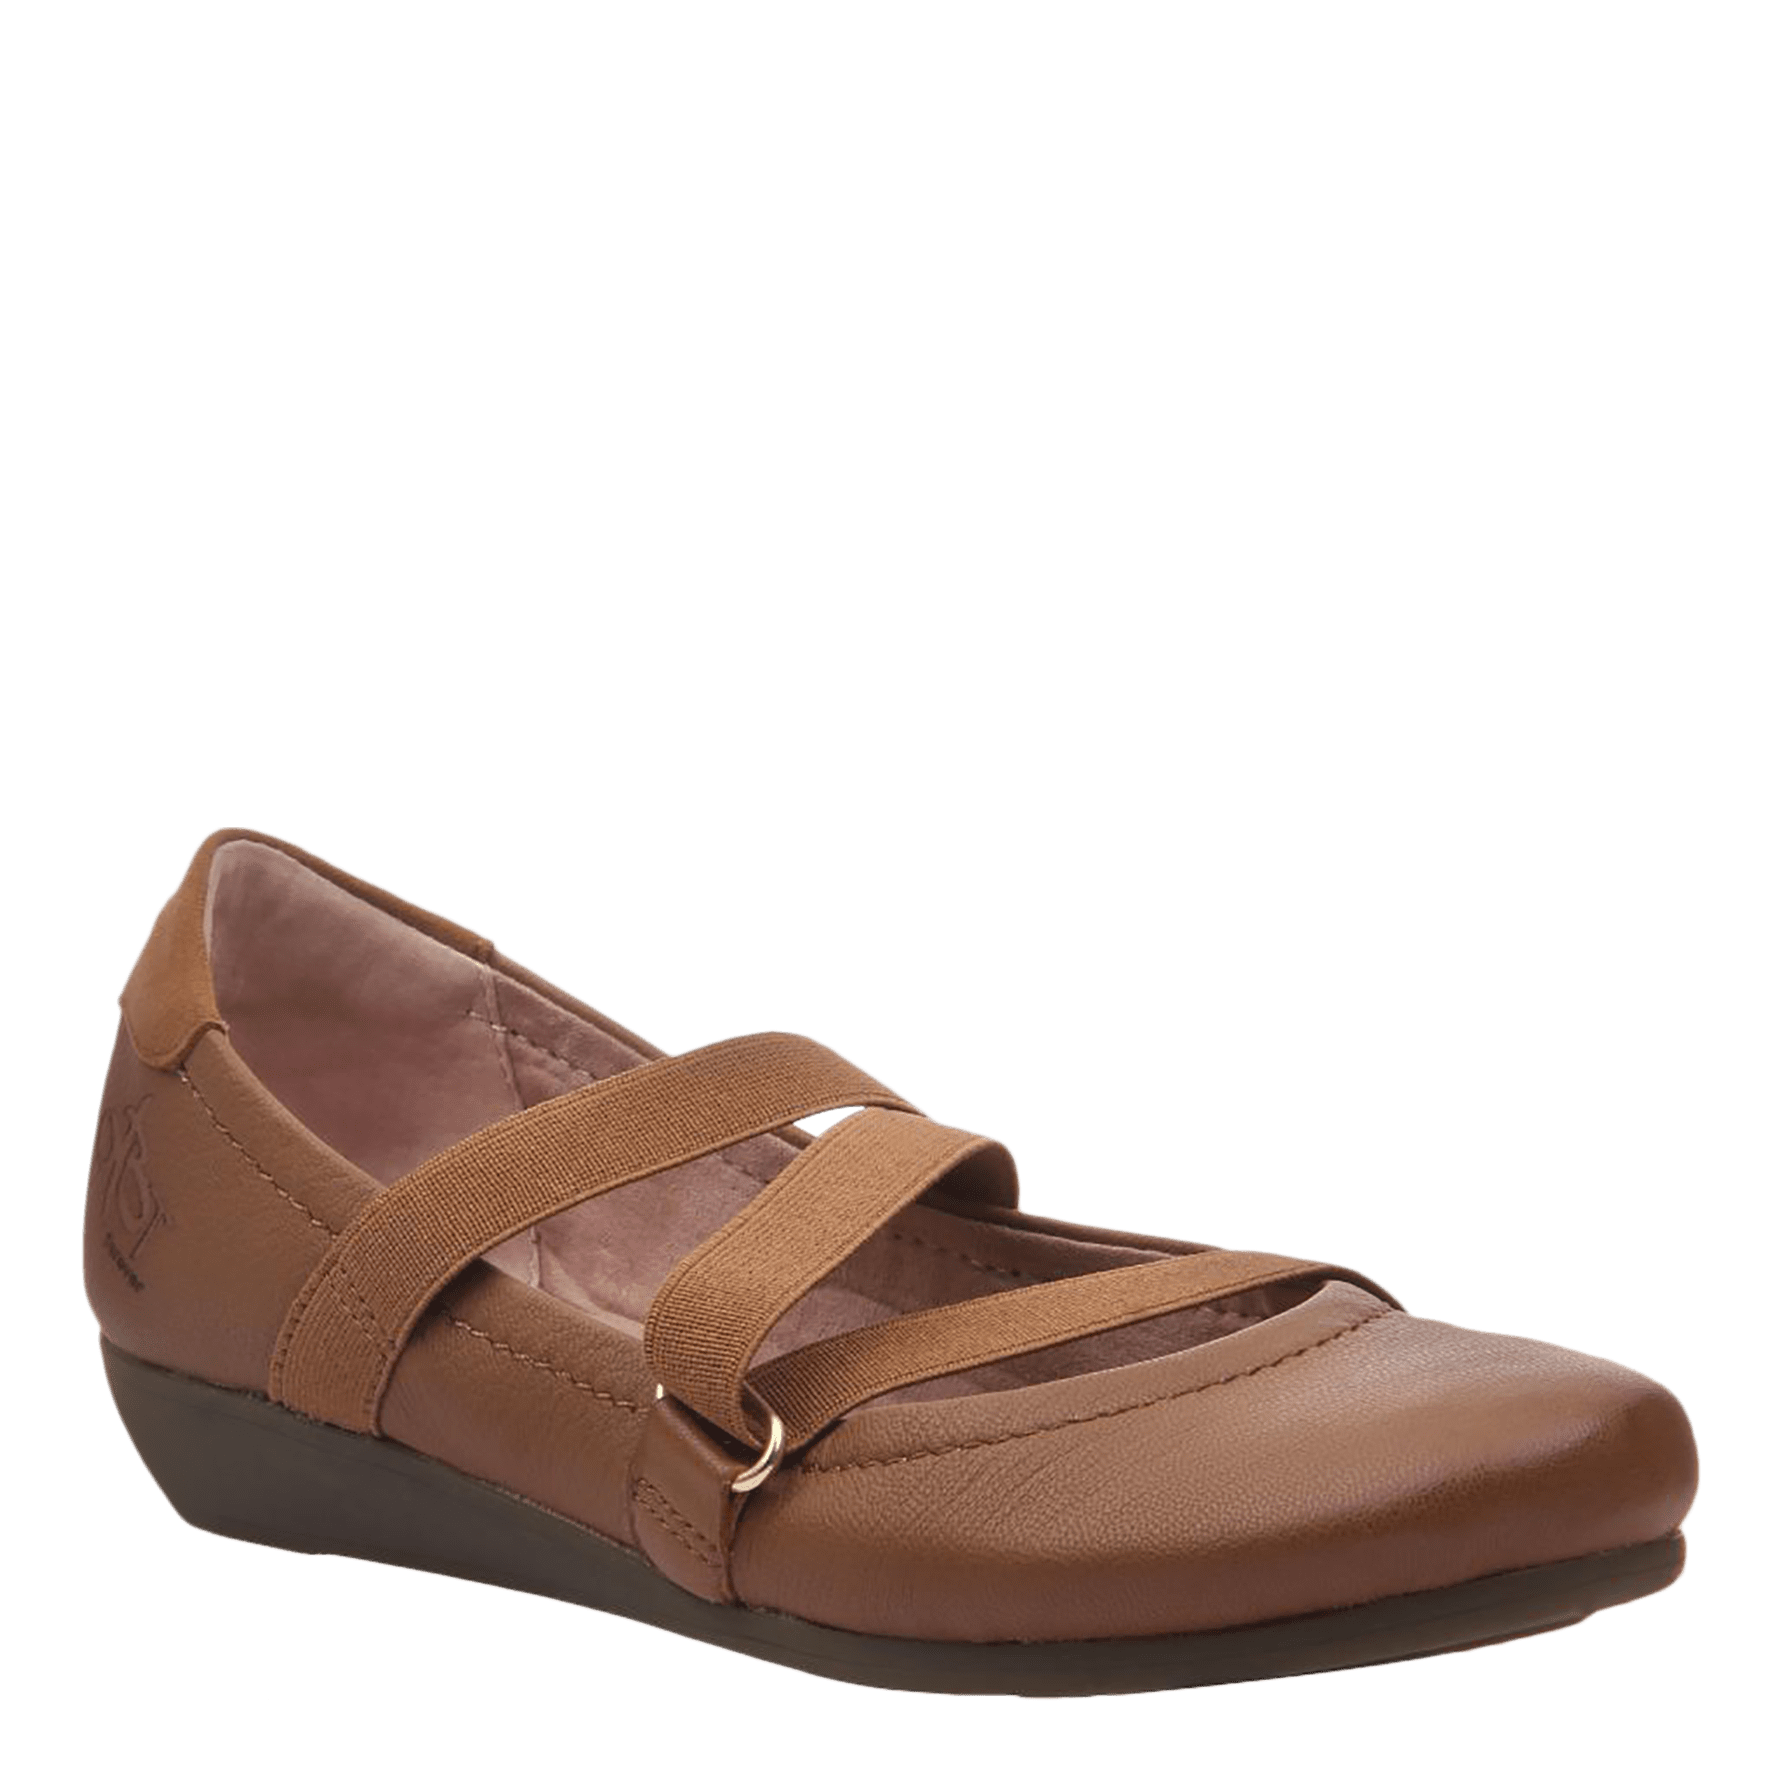 Womens ballet flat anora in butterscotch